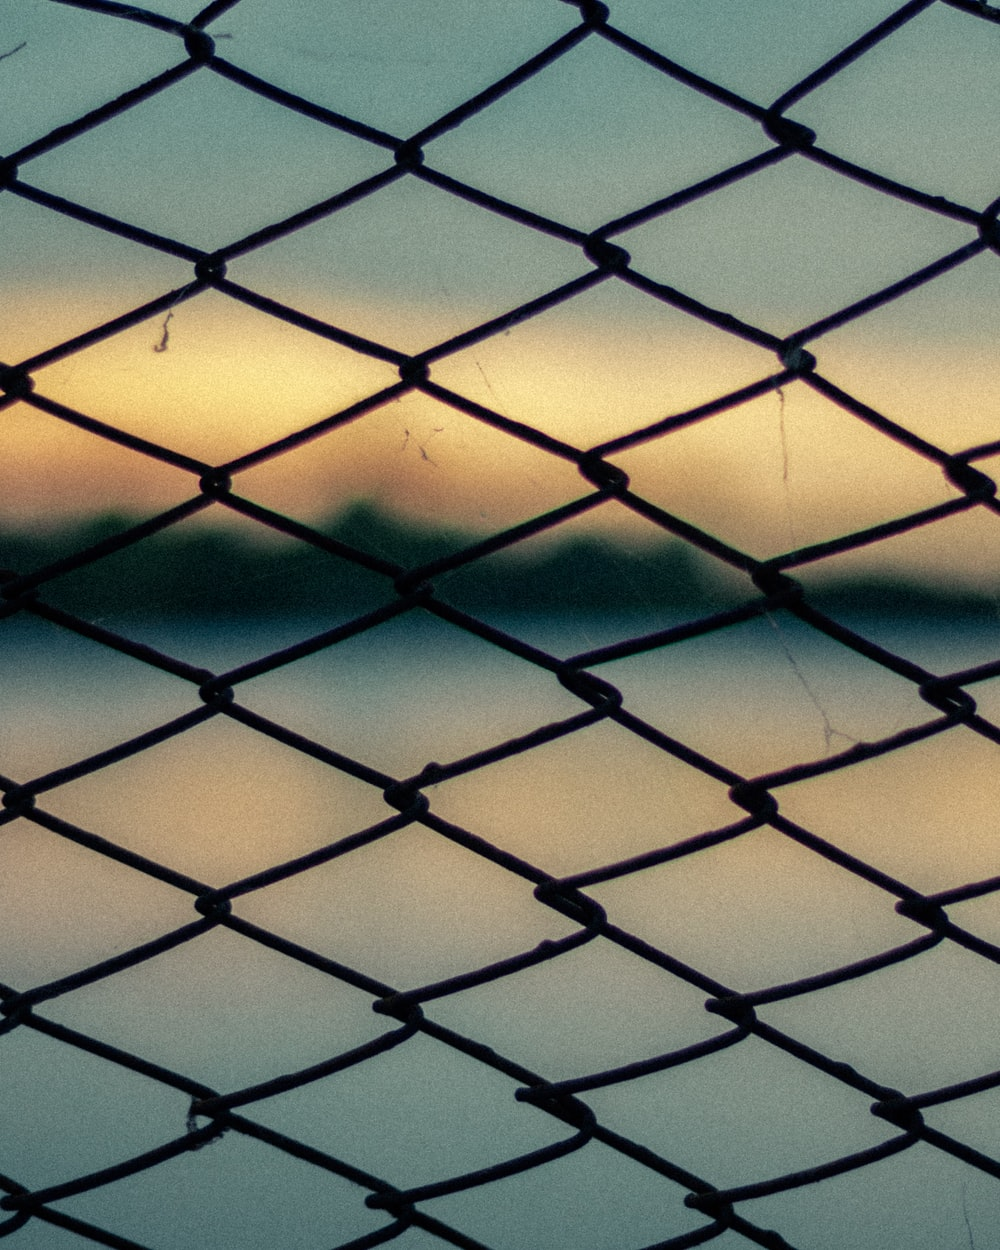 black metal wire fence close-up photography